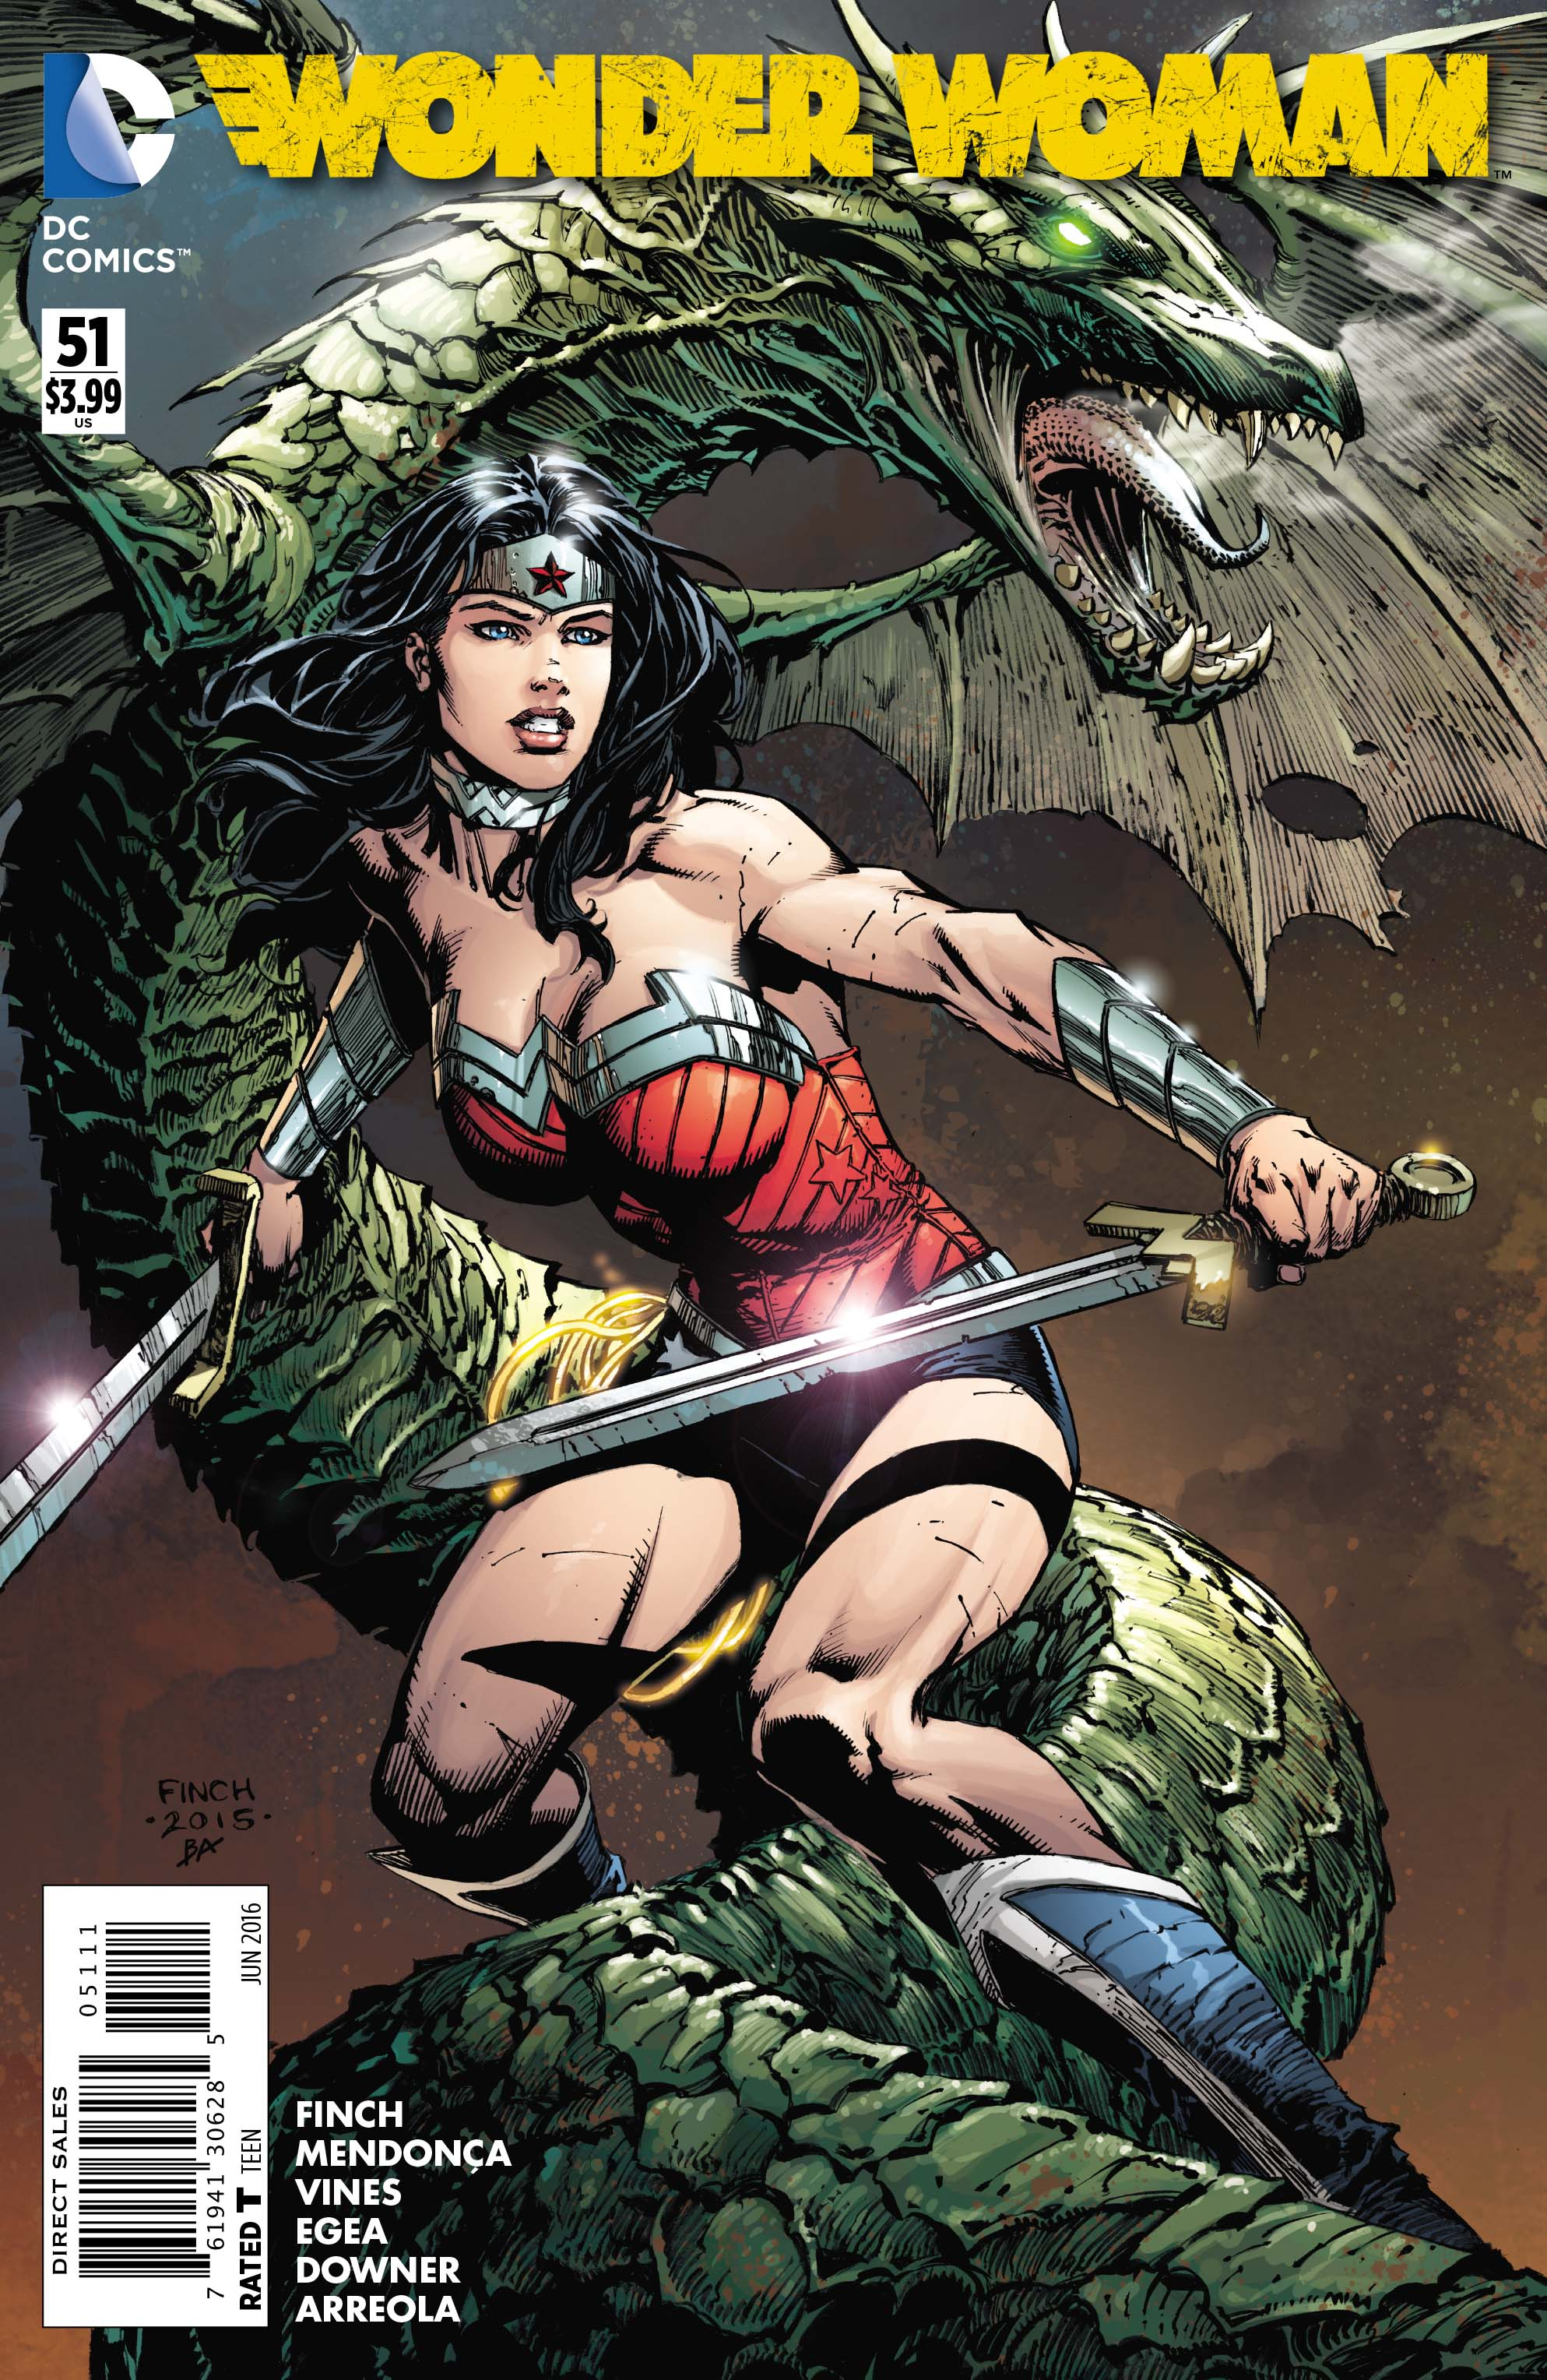 WONDER WOMAN #51 cover